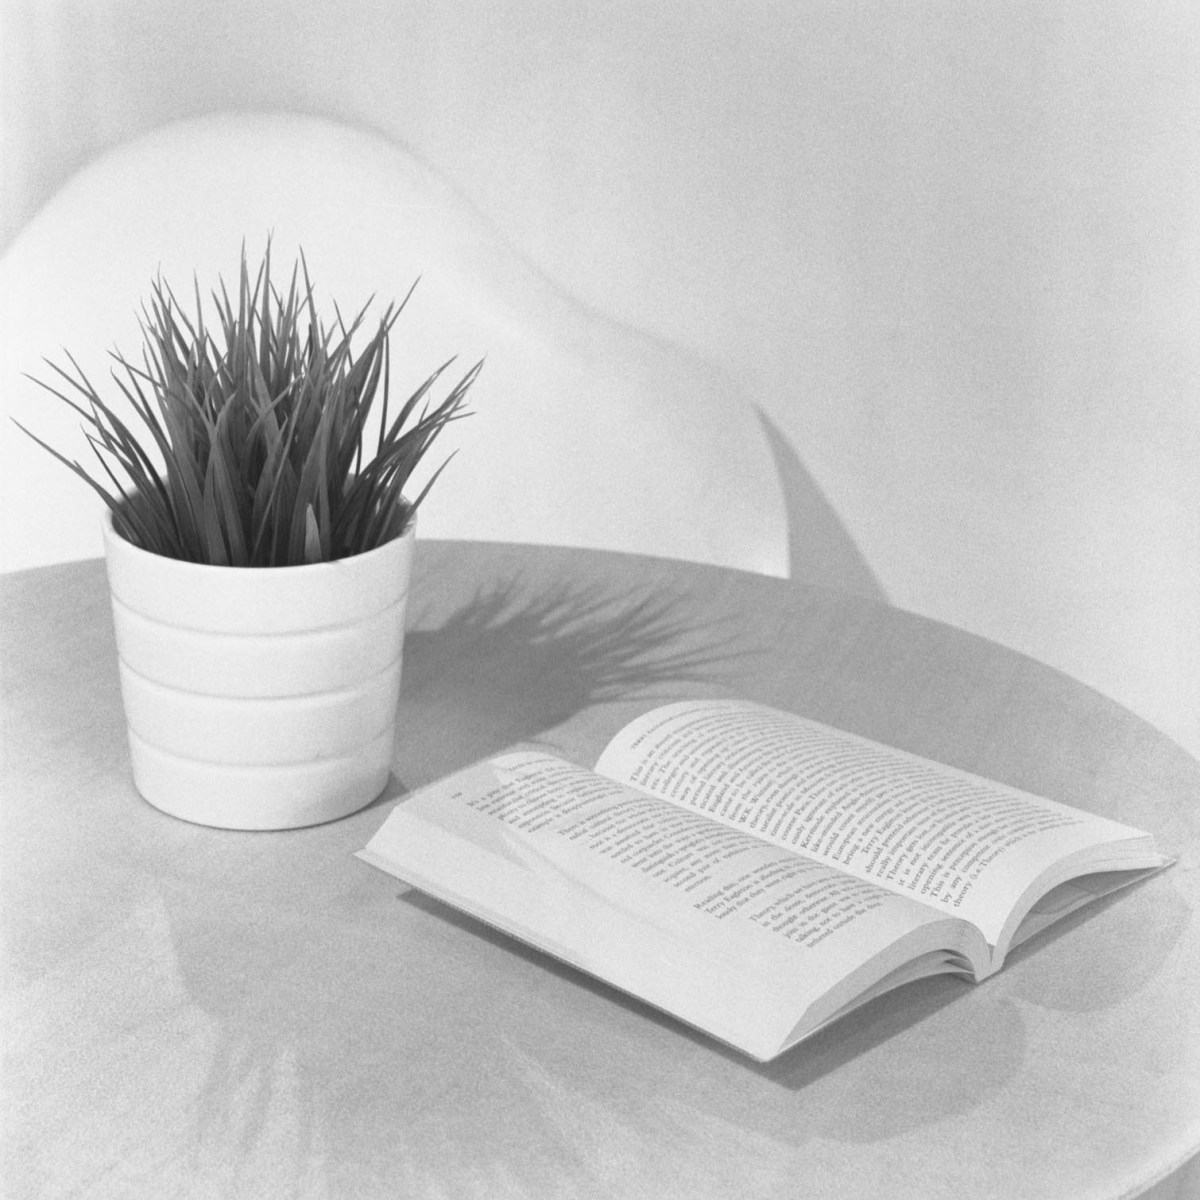 Shard End Library 2015. Shot on Hasselblad 500C/M with ILFORD FP4 PLUS